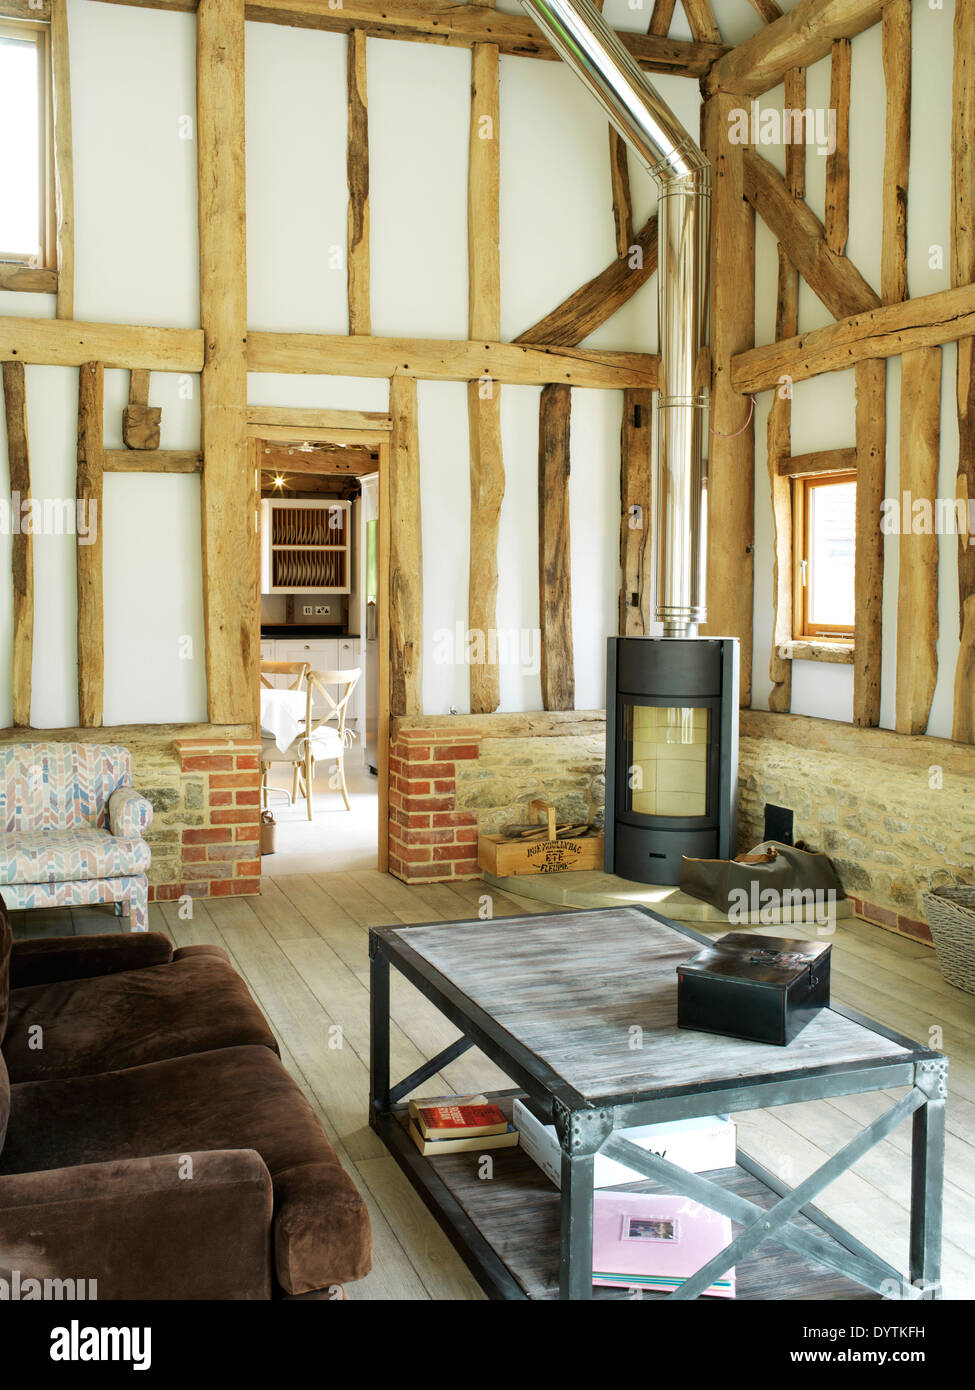 country sitting room in barn conversion stock photos country sitting room in barn conversion. Black Bedroom Furniture Sets. Home Design Ideas